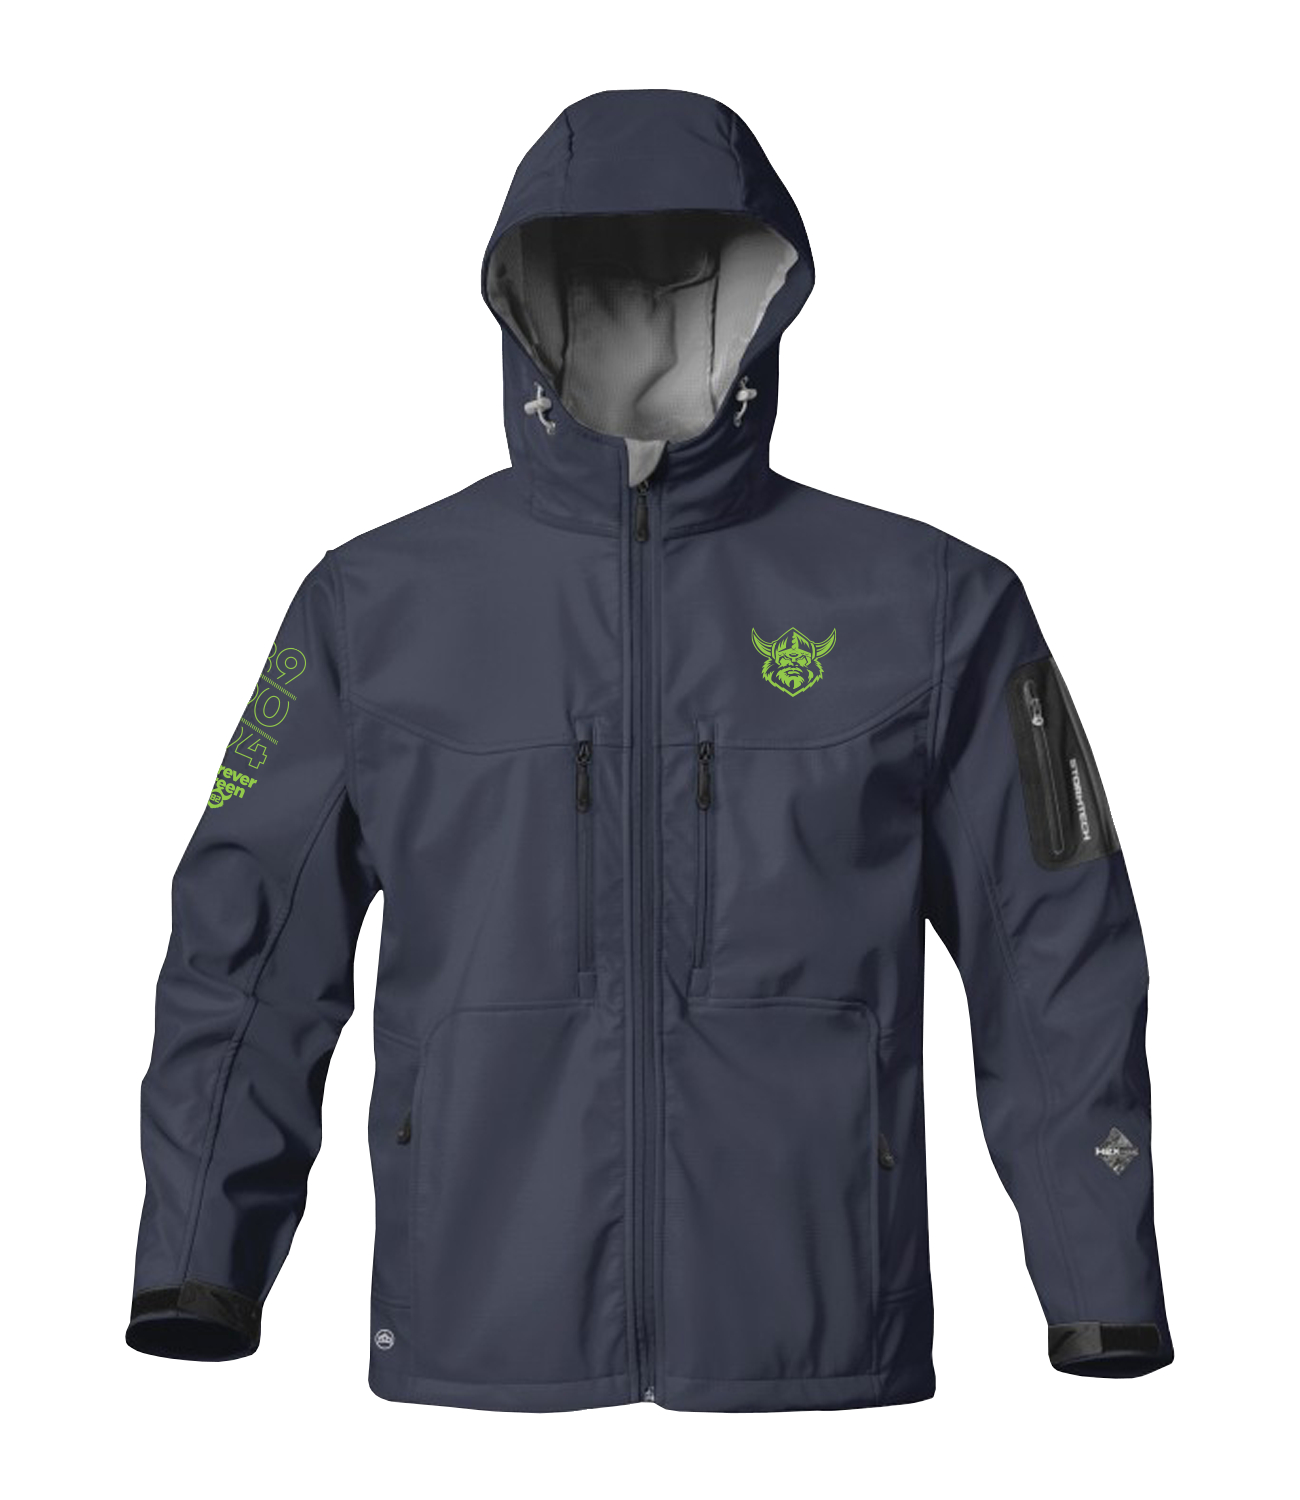 2017 Raiders Stormtech H2XTREME Jacket / ADULT